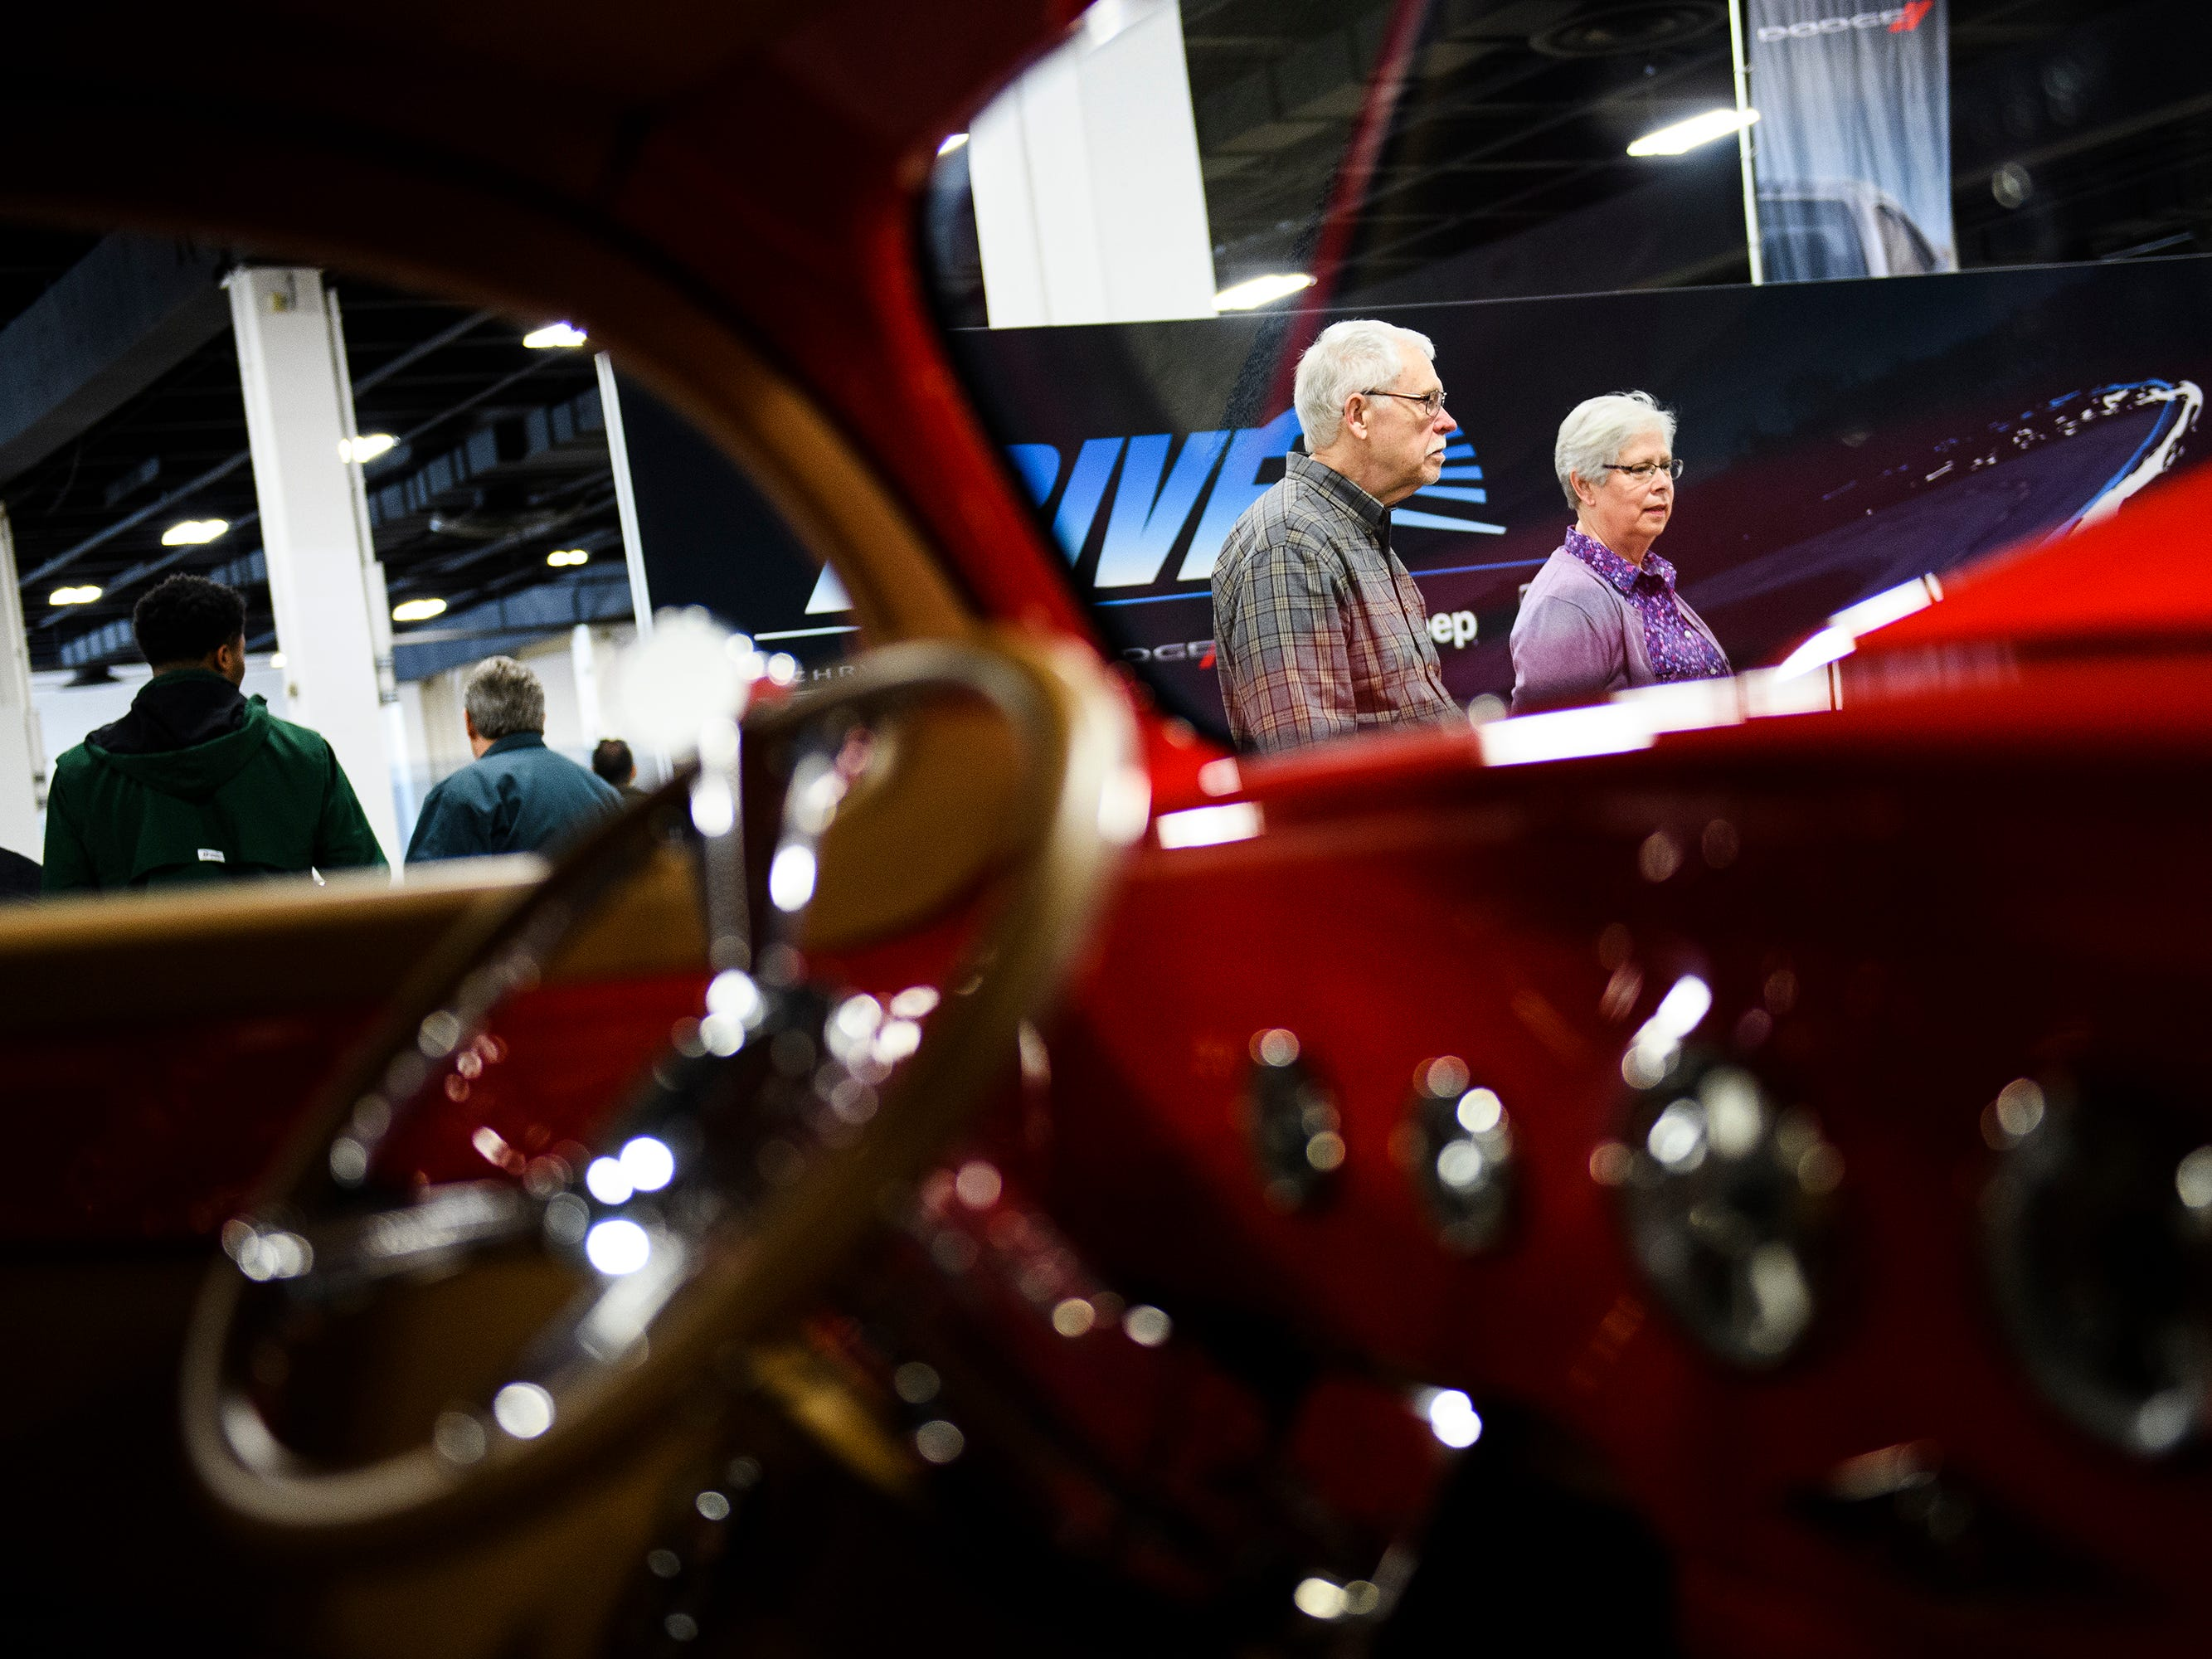 John and John Beezley look at classic cars during the South Carolina International Auto Show Friday, Jan. 11, 2019 at the Greenville Convention Center.